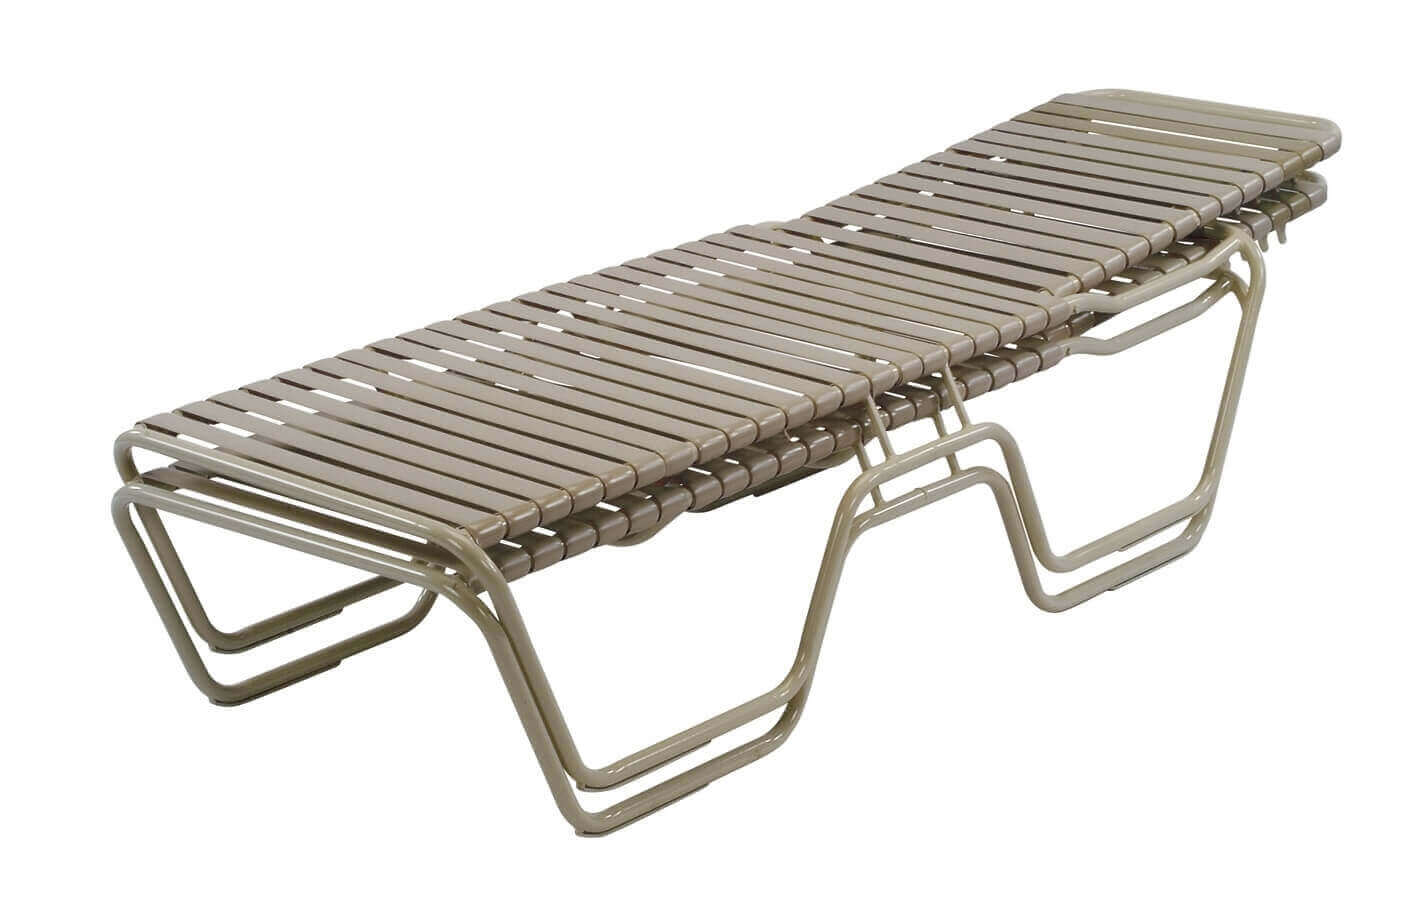 poolside lounge chairs outdoor chair with ottoman st maarten vinyl strap chaise commercial